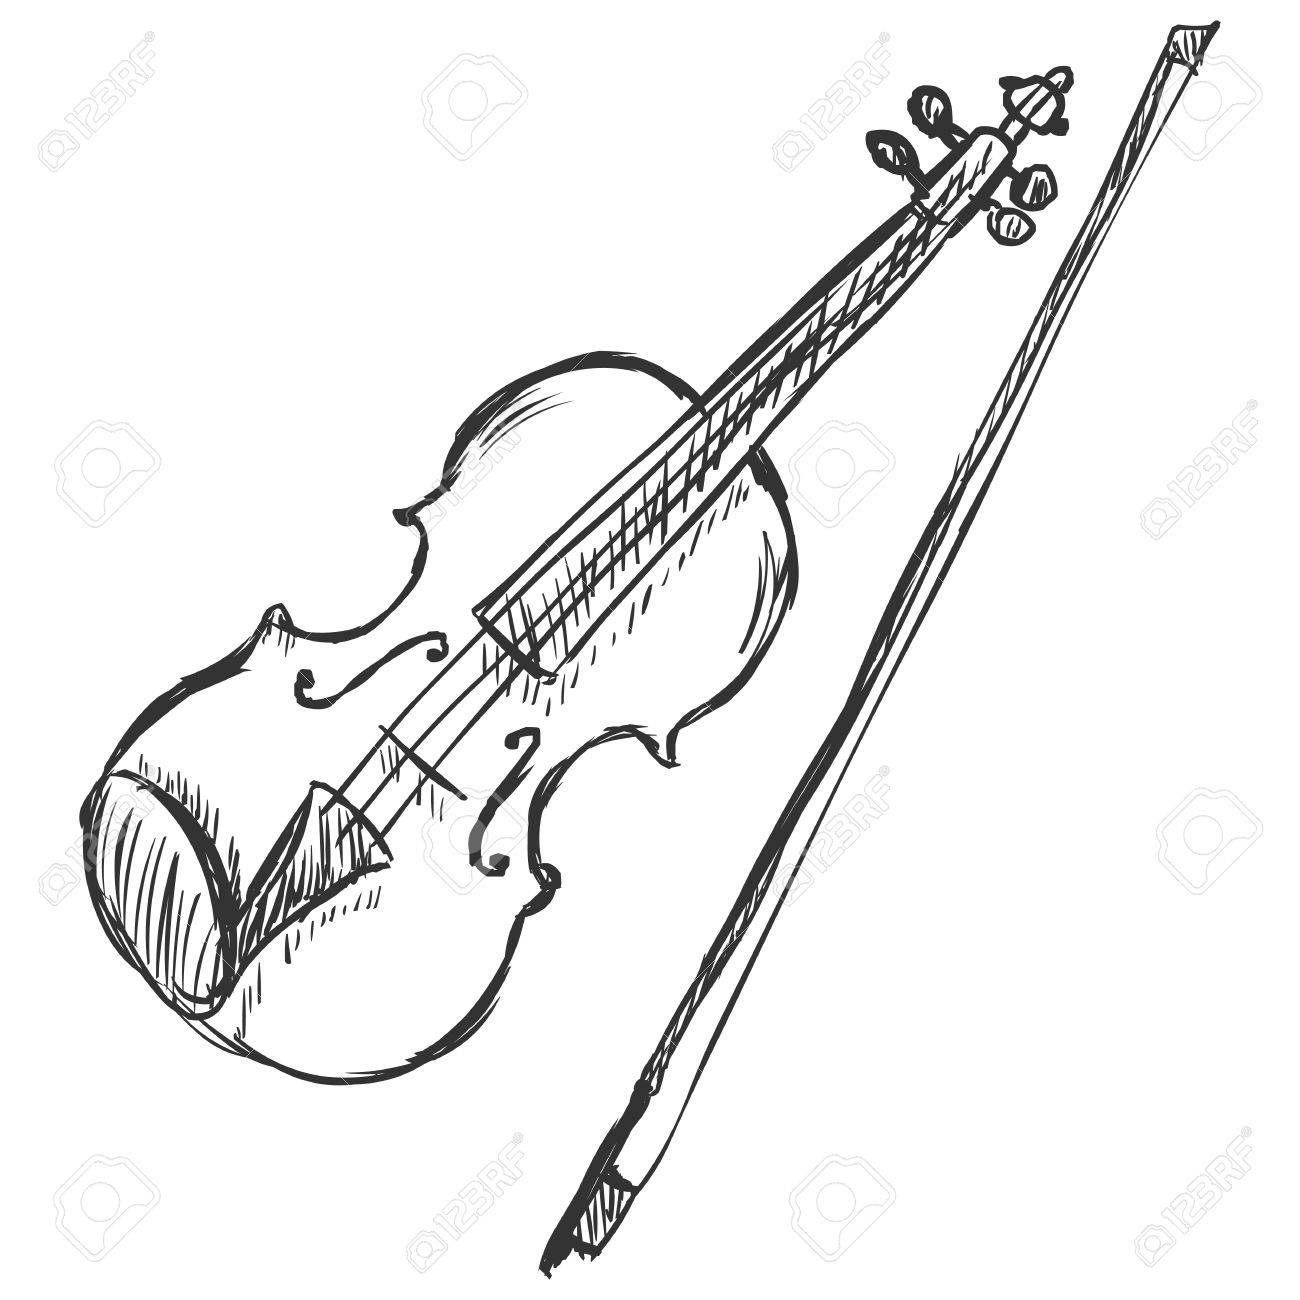 Vector Sketch Violin with Fiddle-bow - 62675507